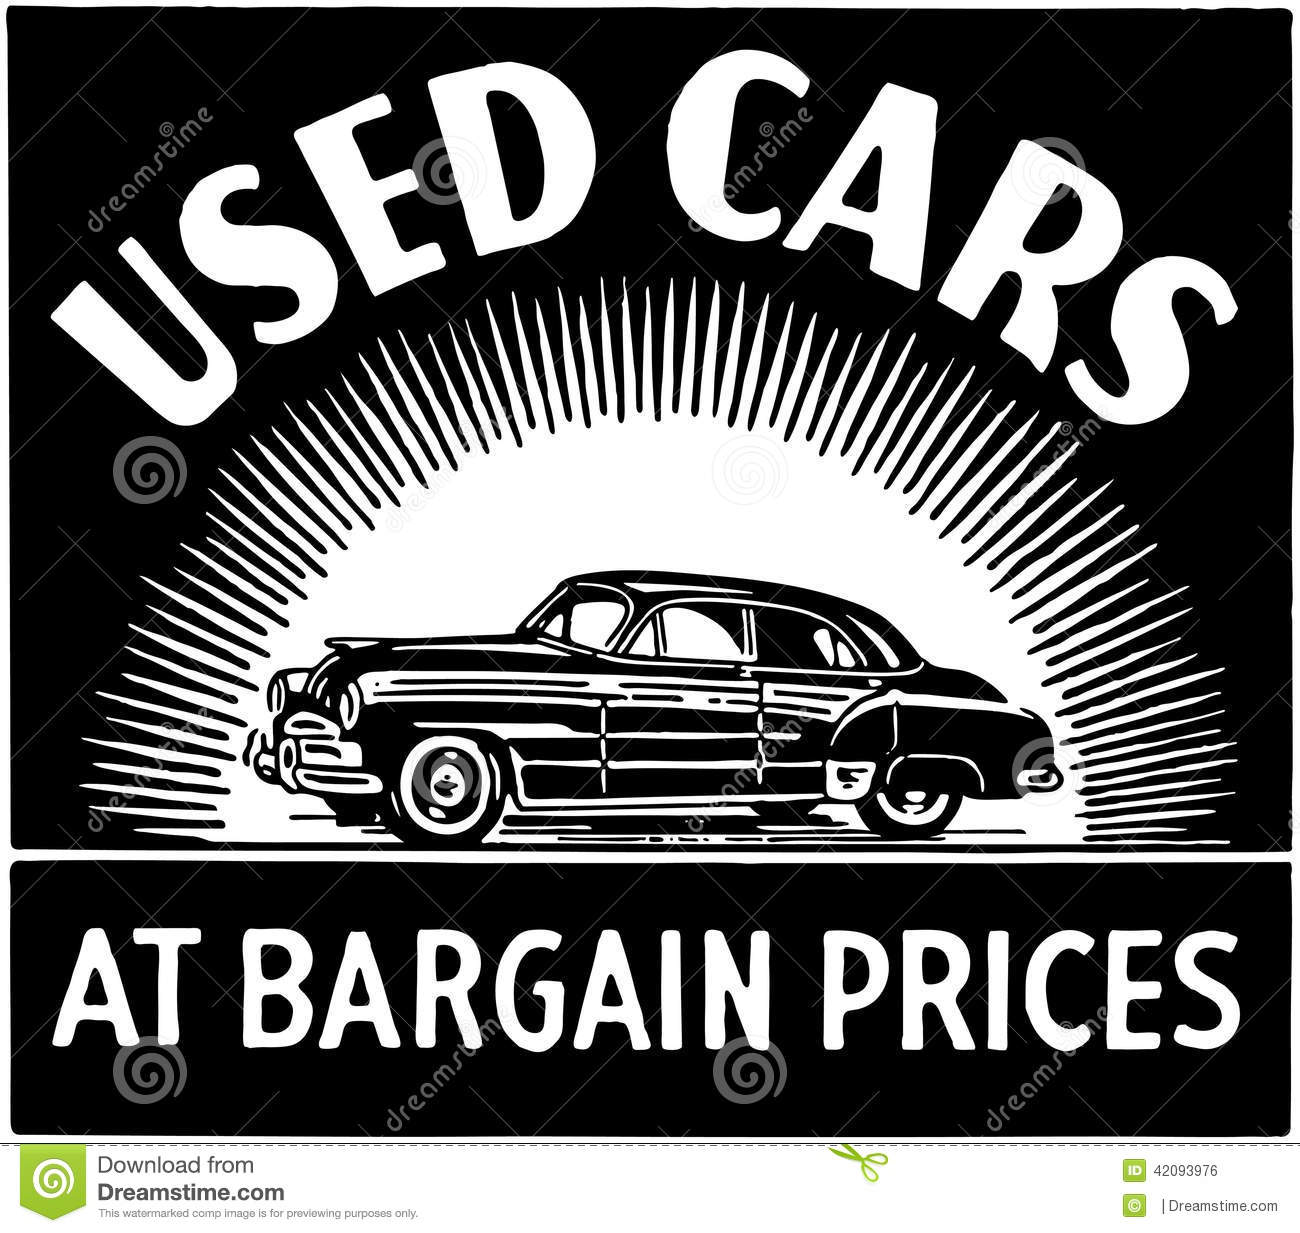 used cars at bargain prices stock vector image 42093976. Black Bedroom Furniture Sets. Home Design Ideas